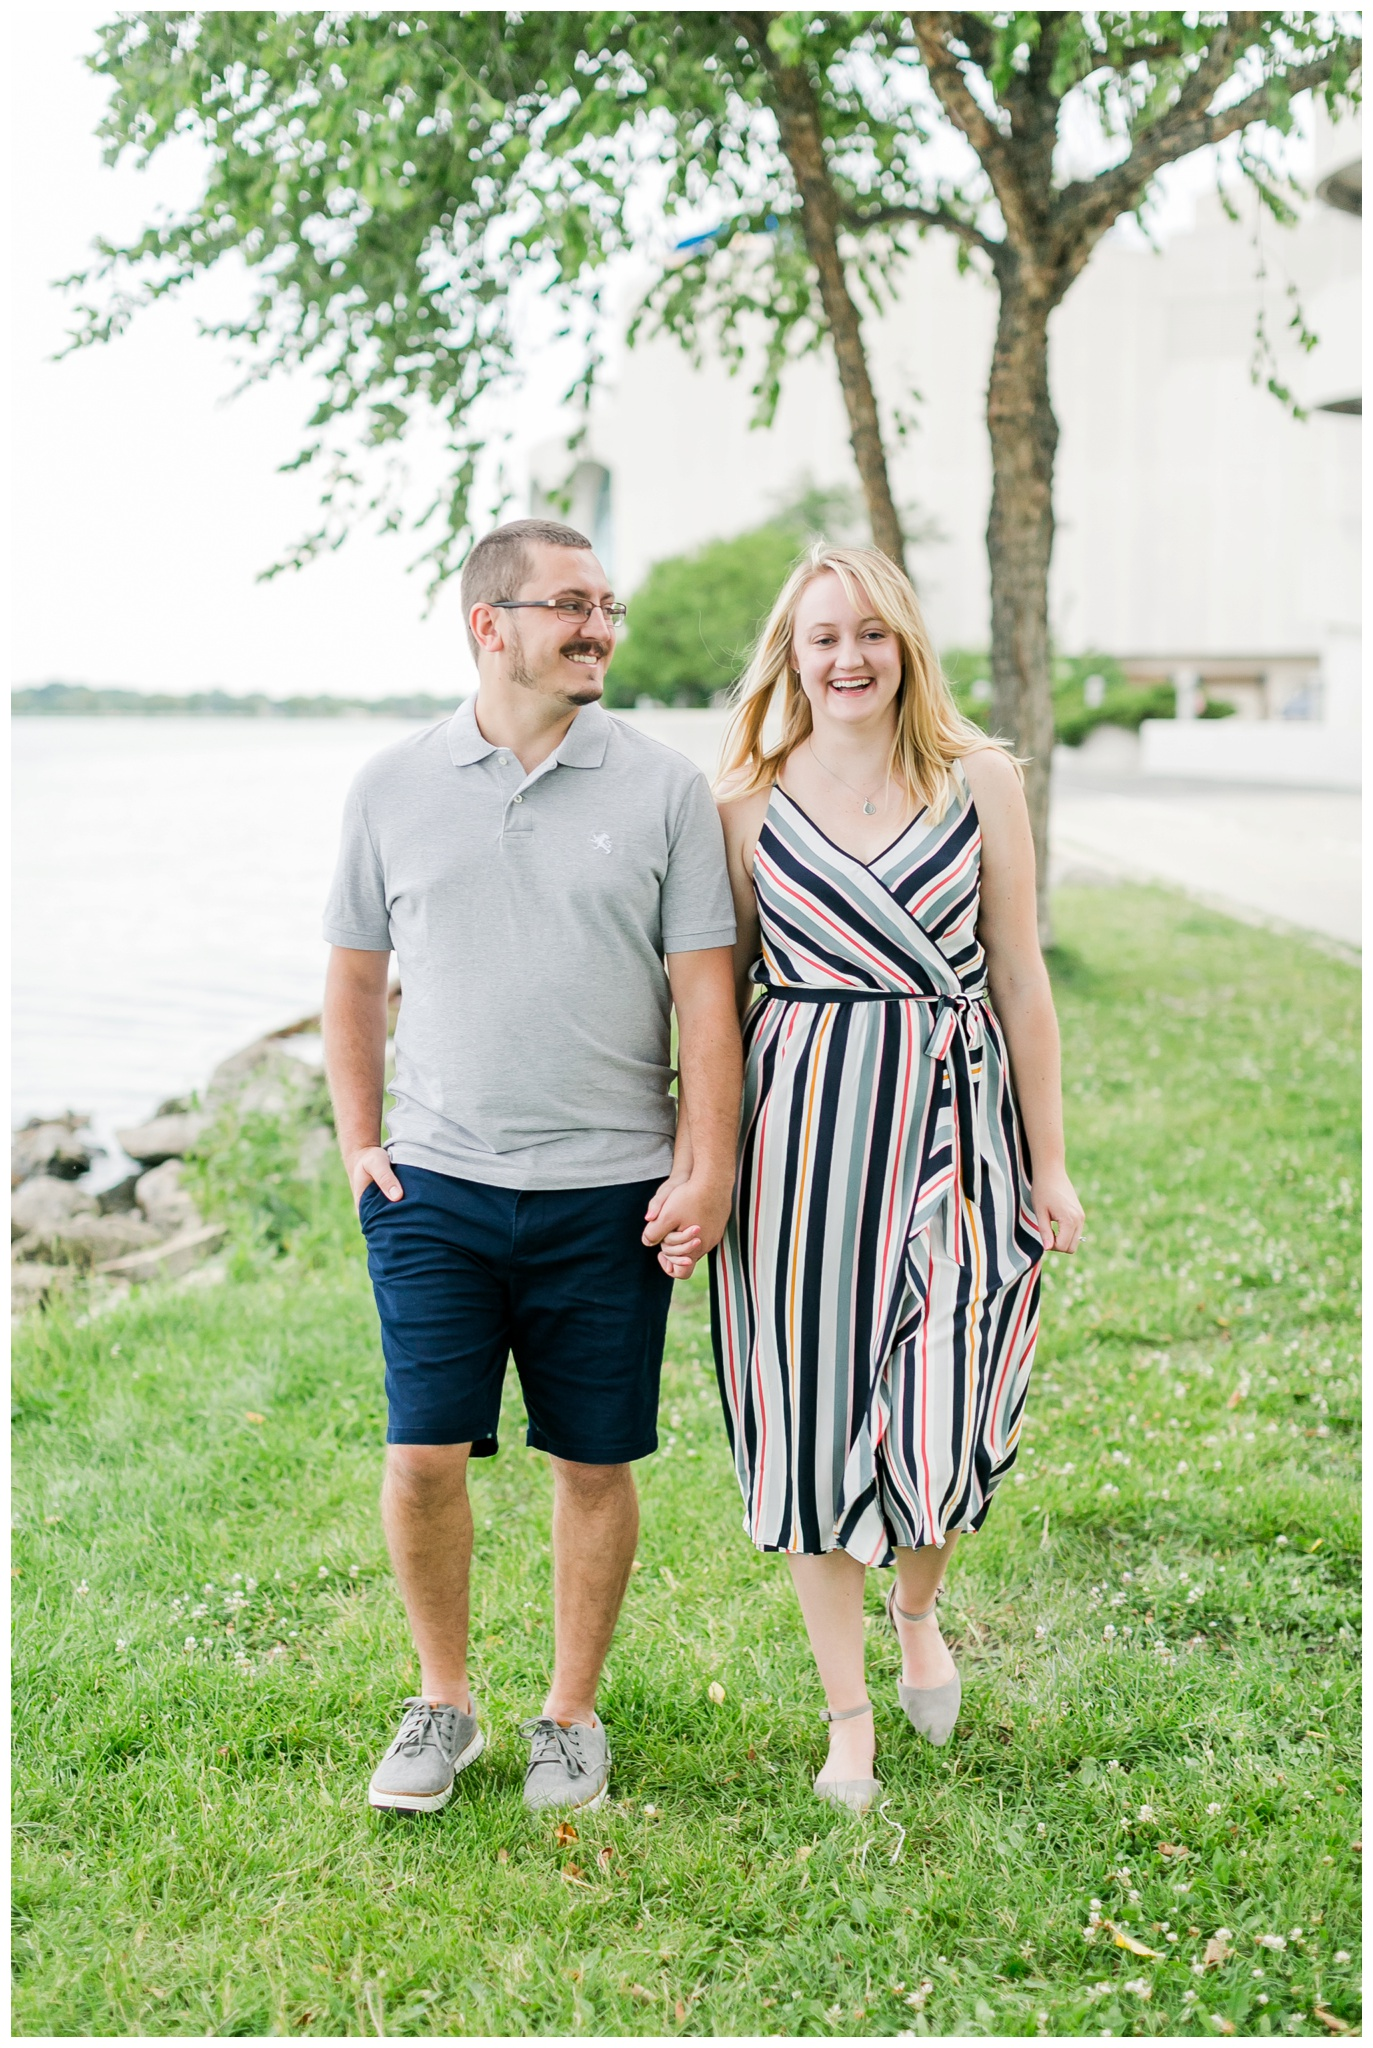 Downtown_madison_wisconsin_engagement_session_4213.jpg